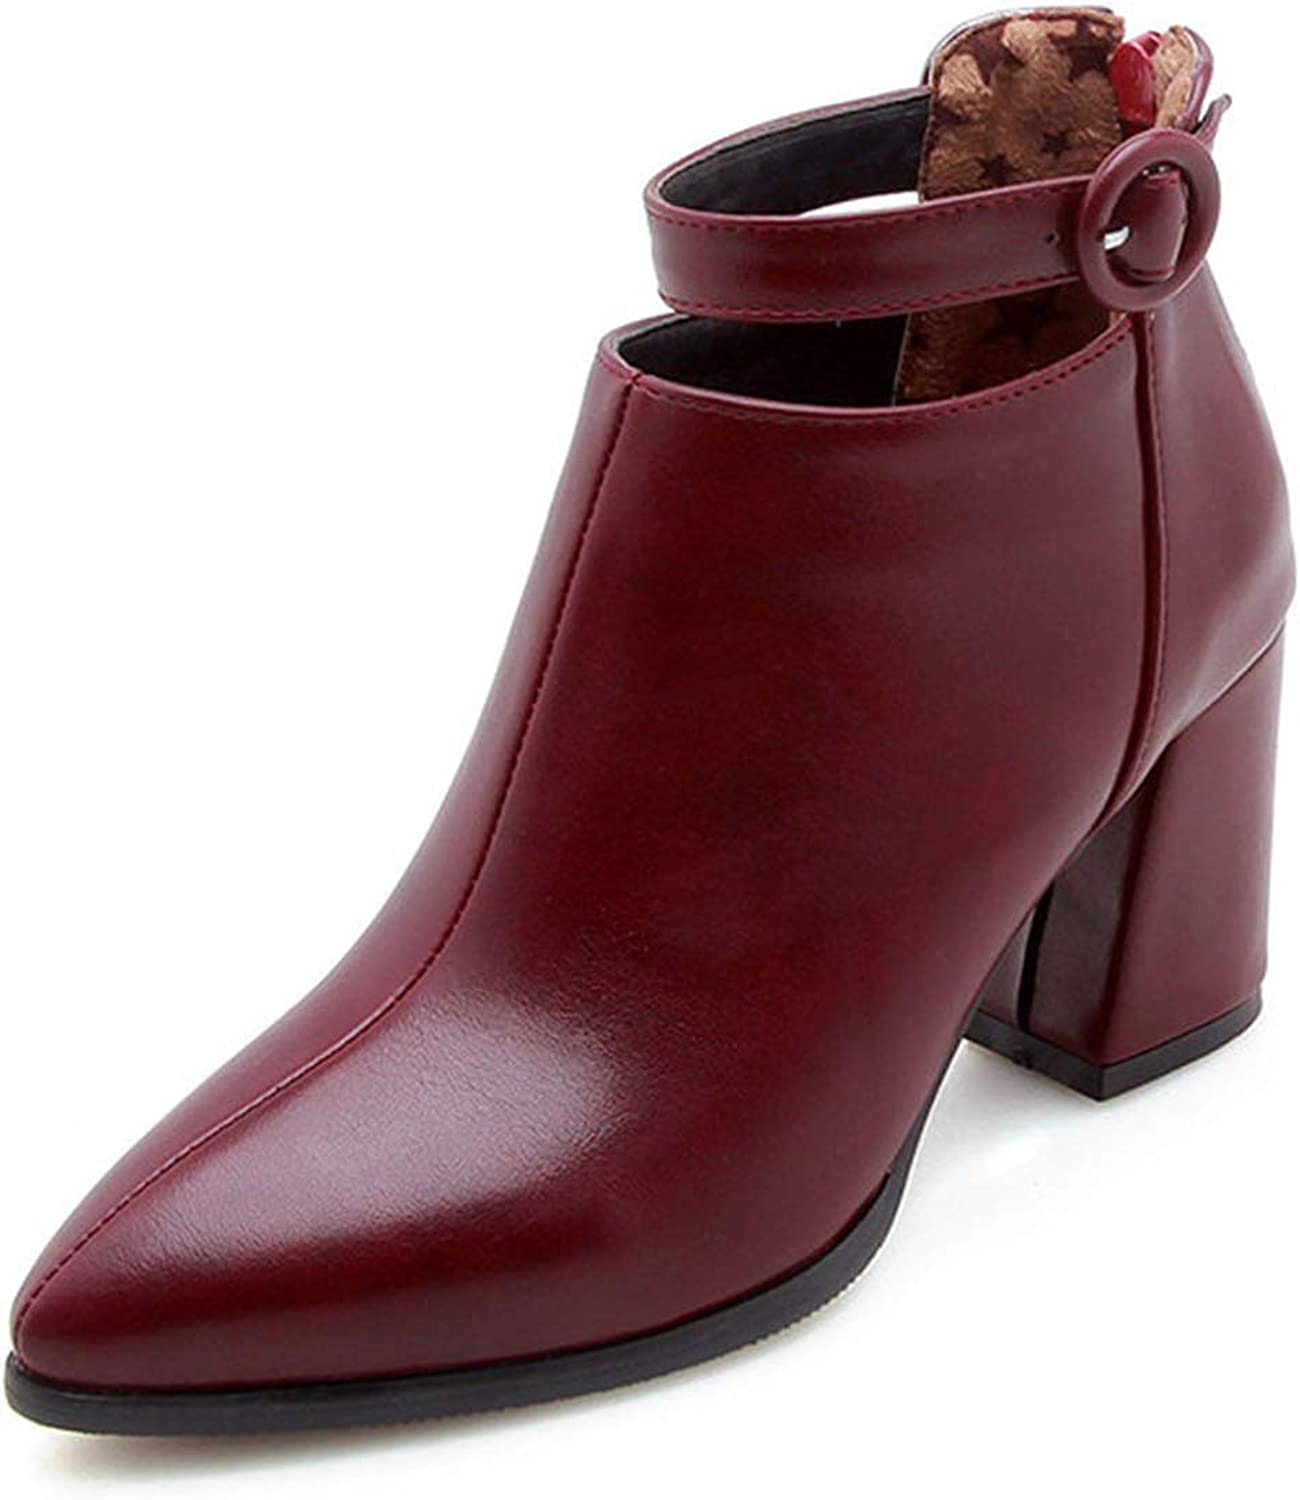 Meet- fashion Pointed Toe Square Heel Women Boots Buckle Ankle Zipper High Heel Boots shoes Woman Large Size